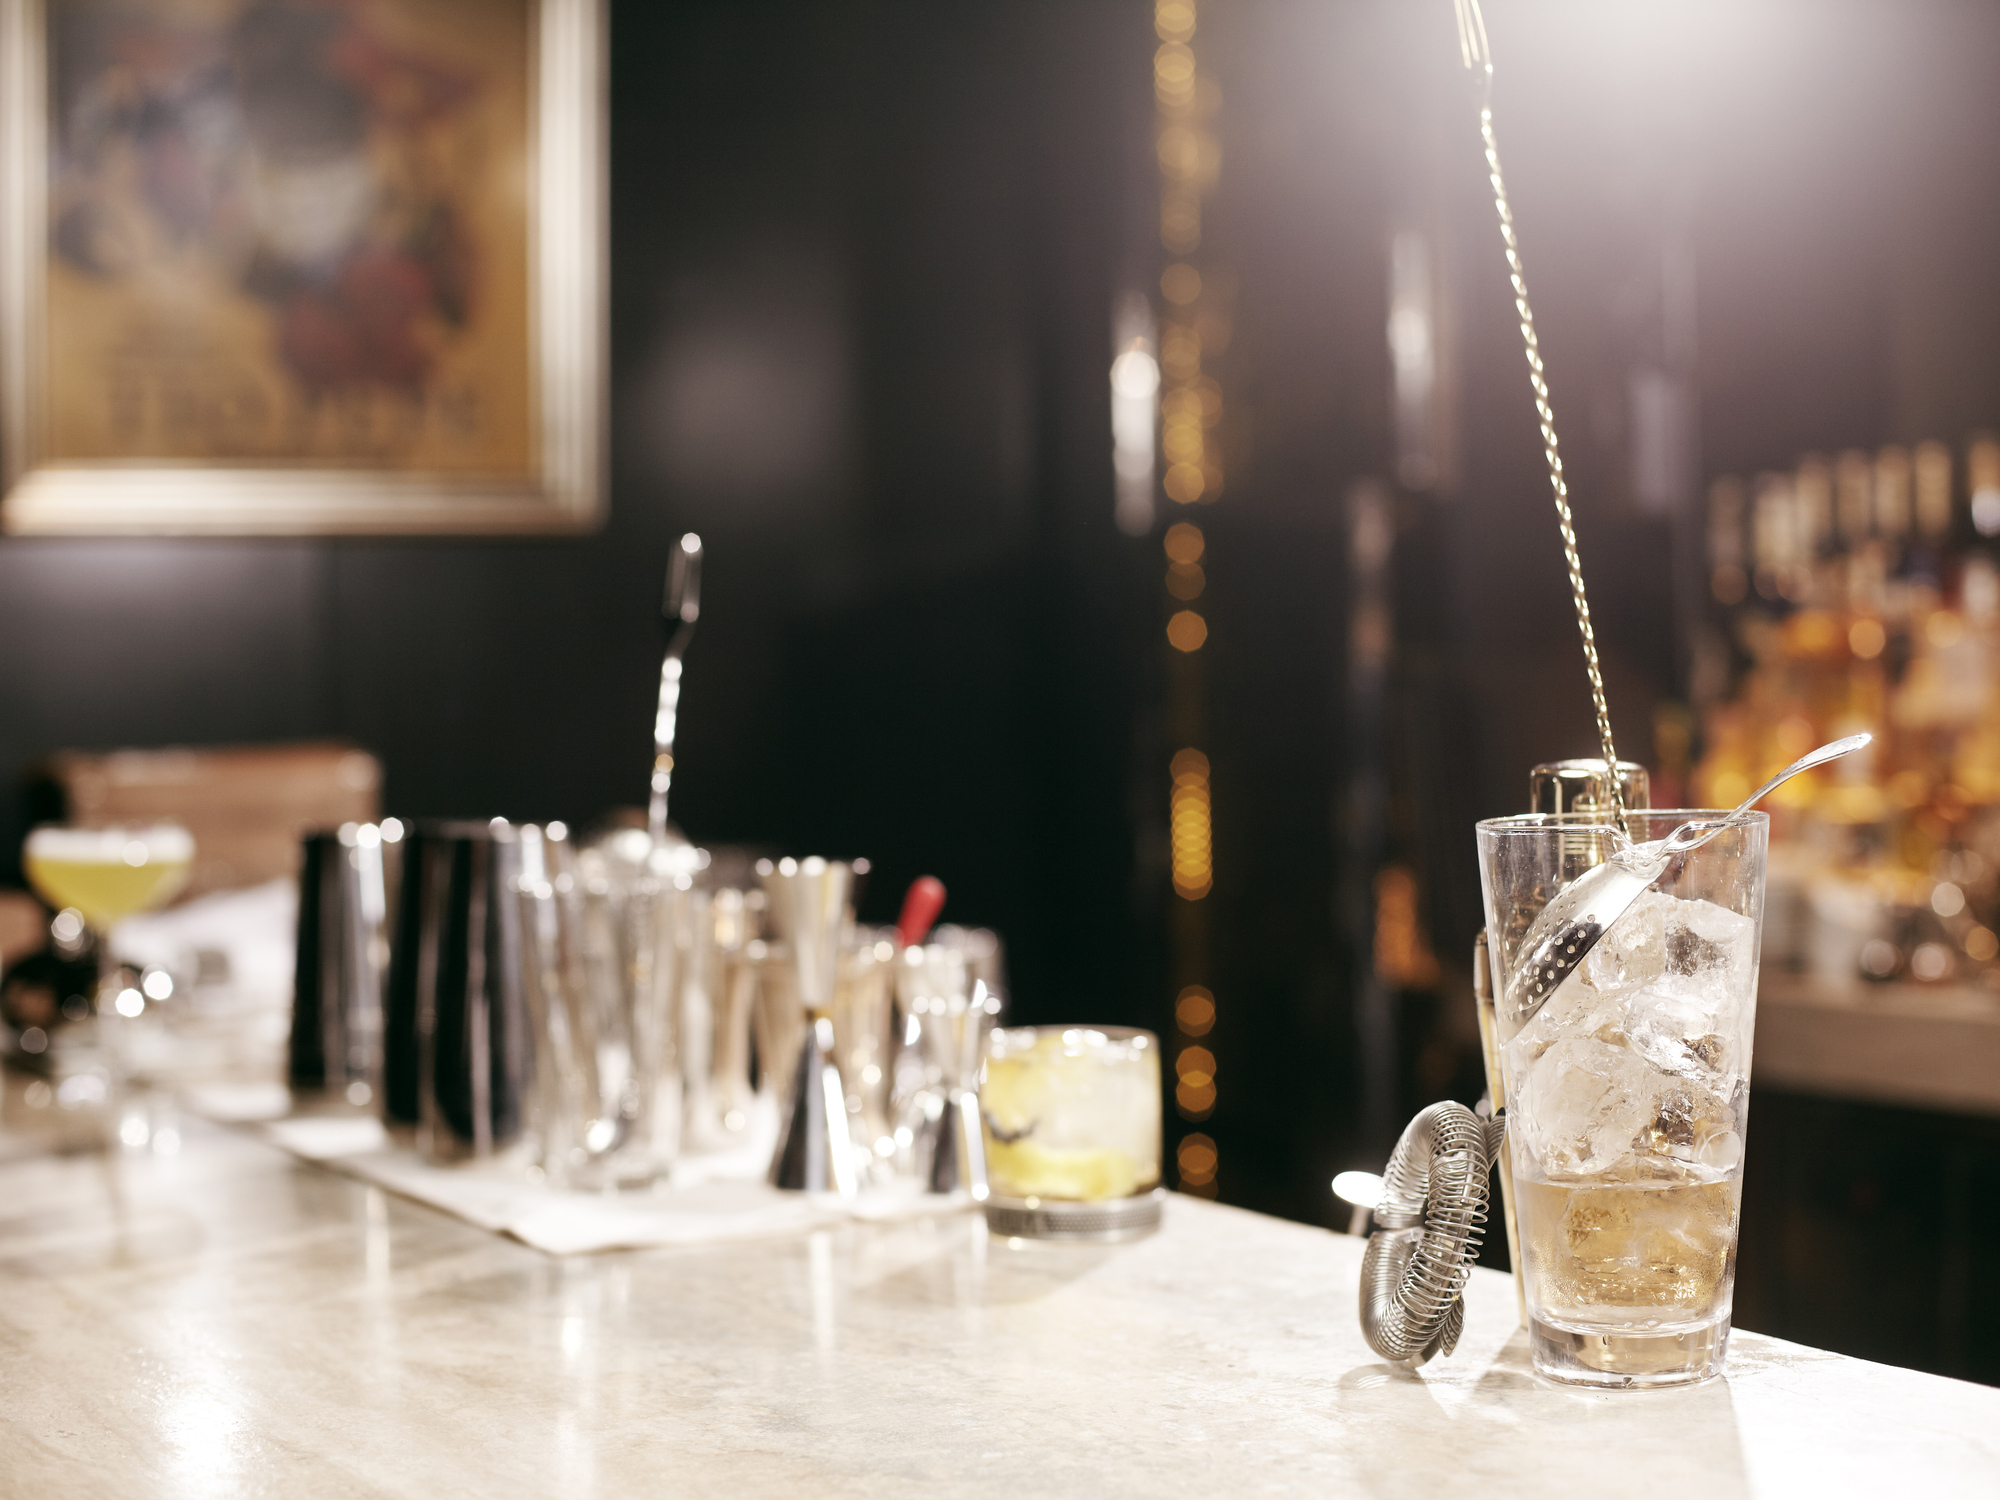 cocktail-bar-blog0817.jpg